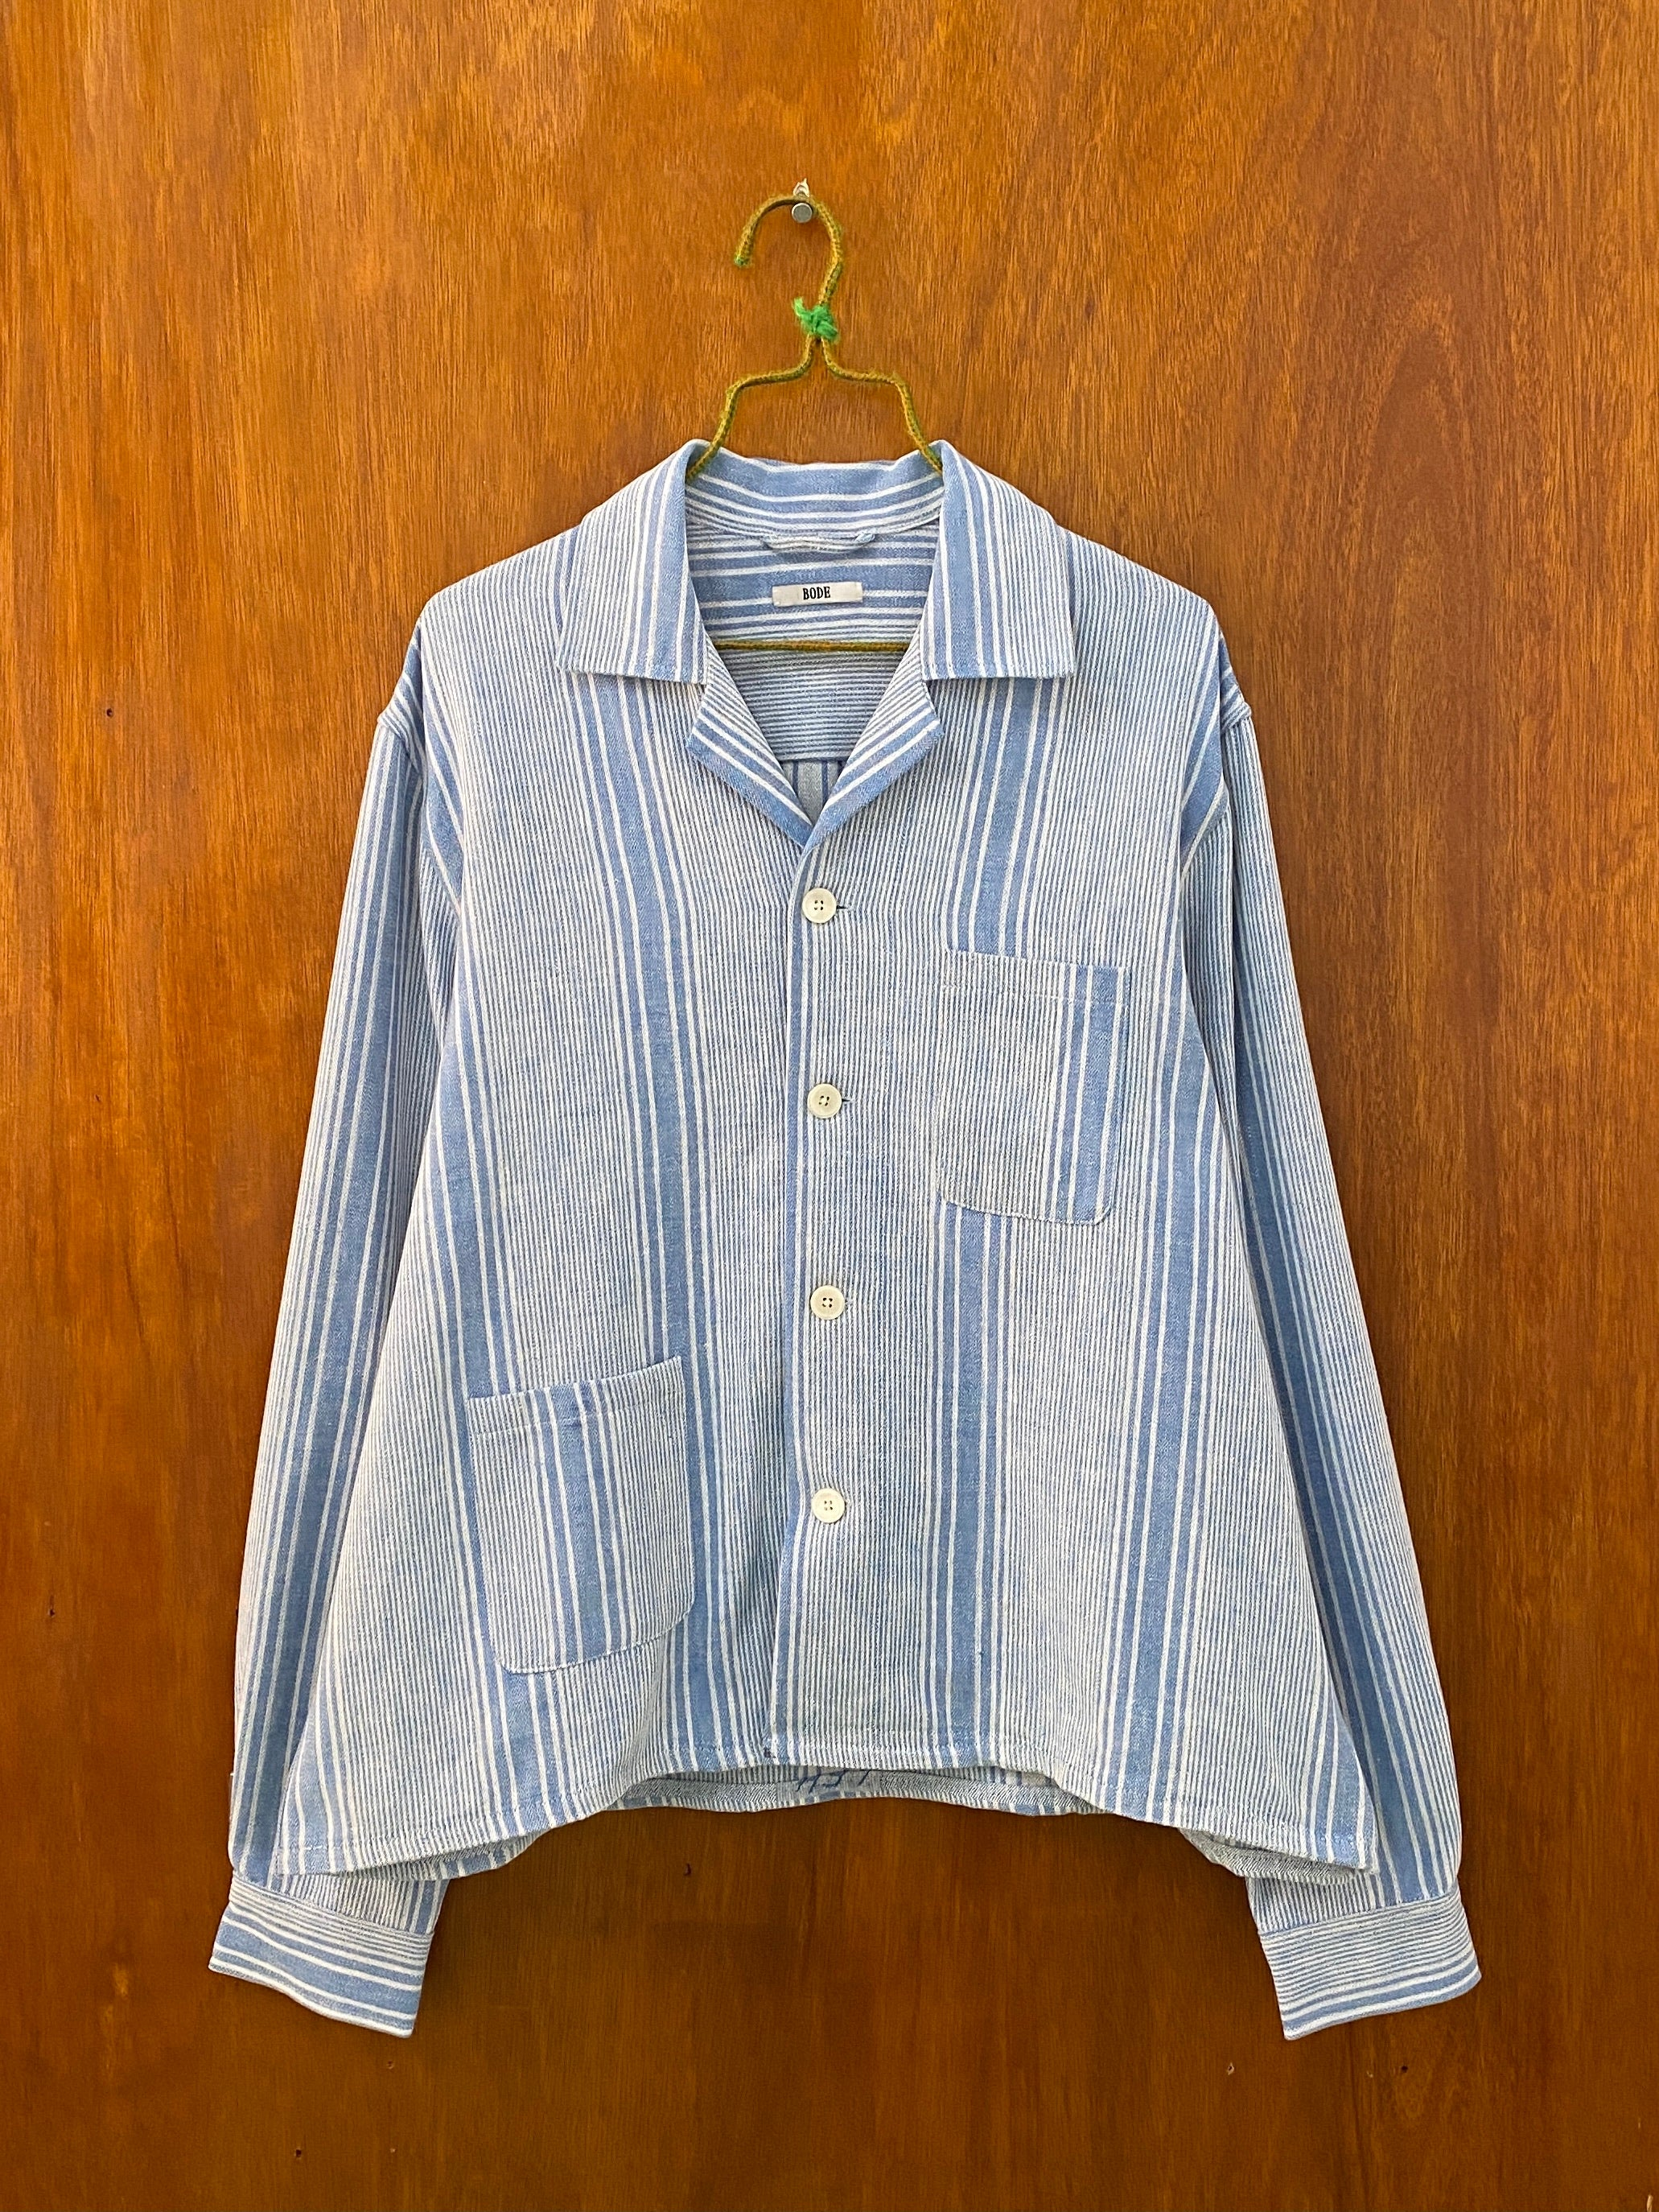 Pajama Stripe Overshirt - L/XL